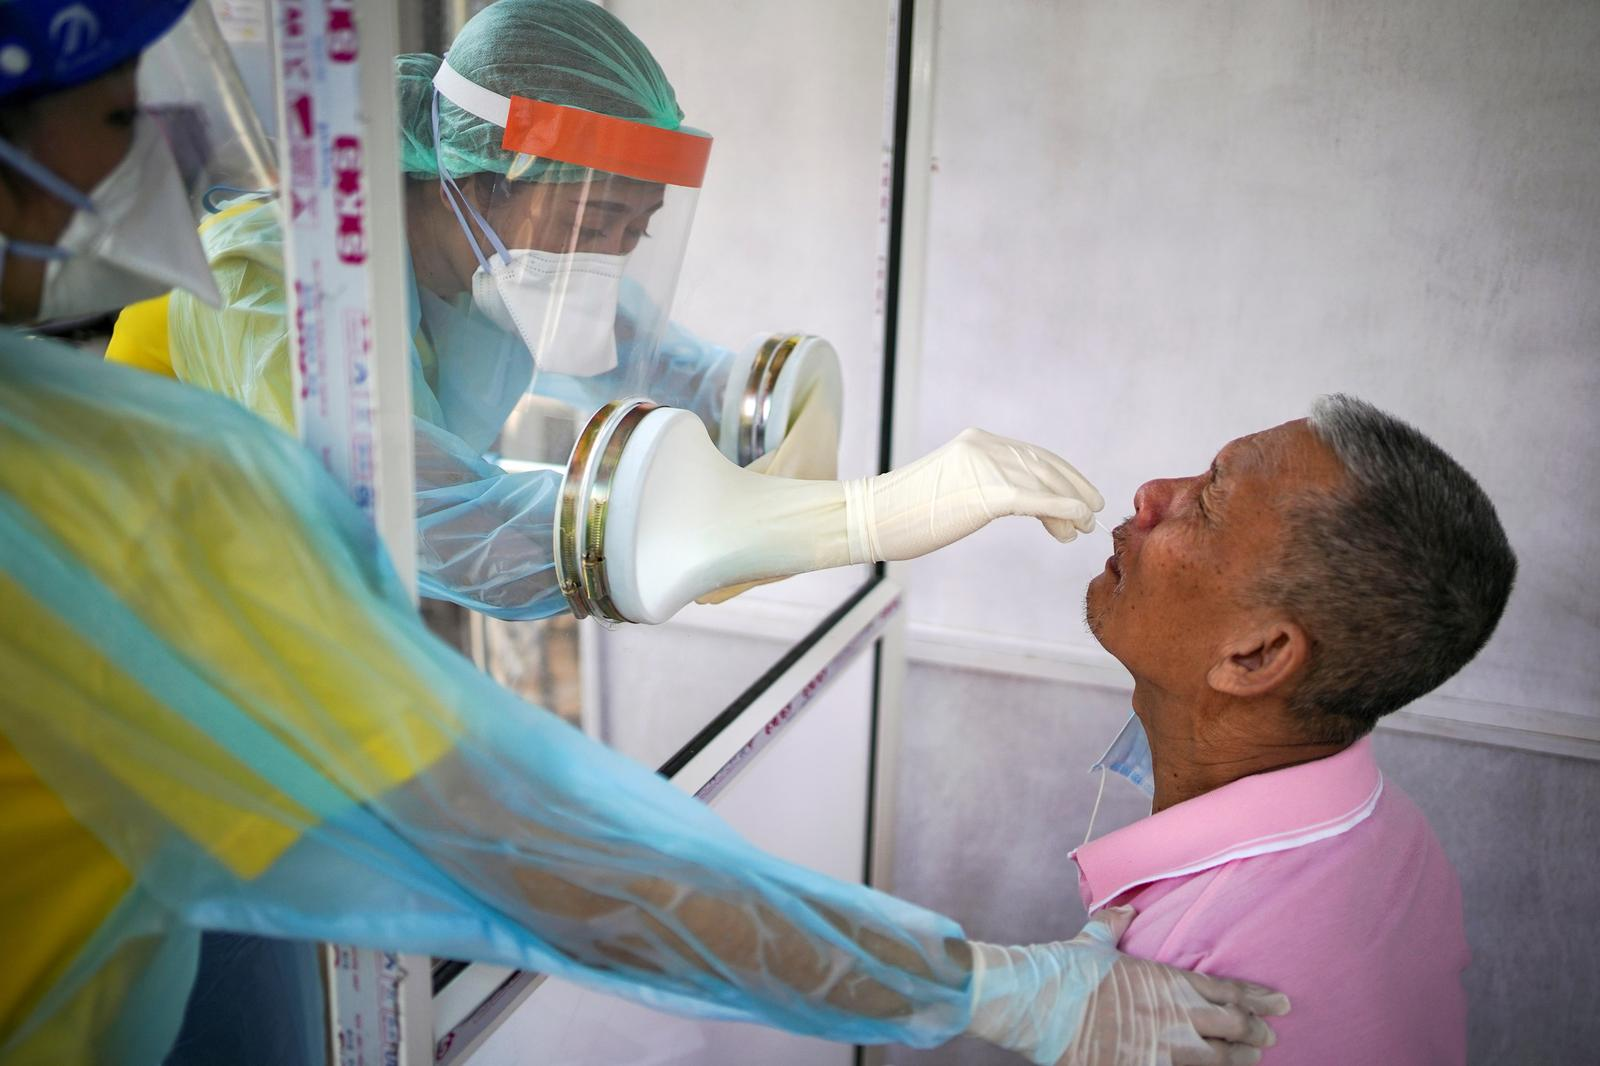 Samut Sakhon, Thai Health Department Races to Prevent a Potential Covid-19 Outbreak